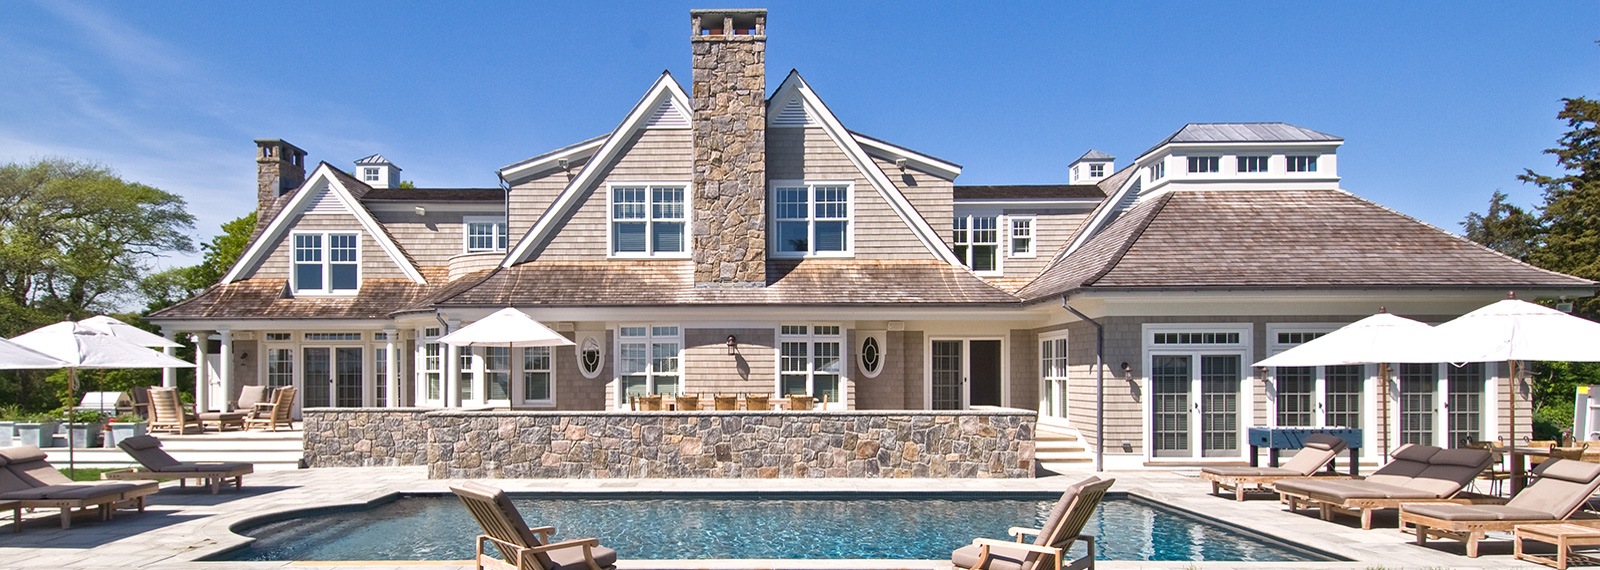 Luxury beach homes exterior - Luxury Beach Homes Exterior Westhampton Luxury Home Rear Exterior 01 1600x570